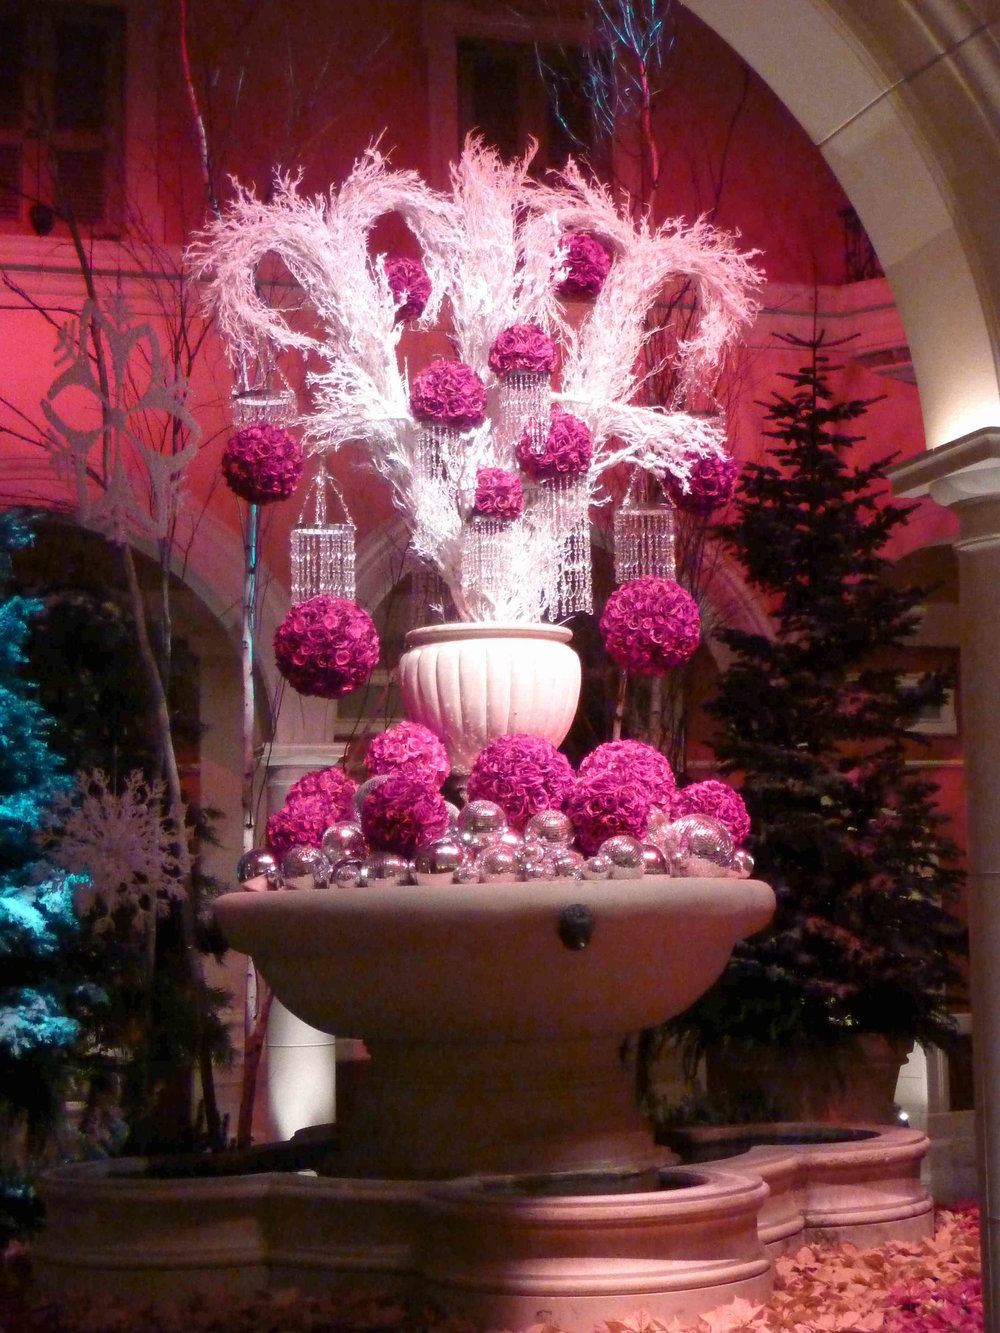 ...and the flowers in their lobby are amazing!